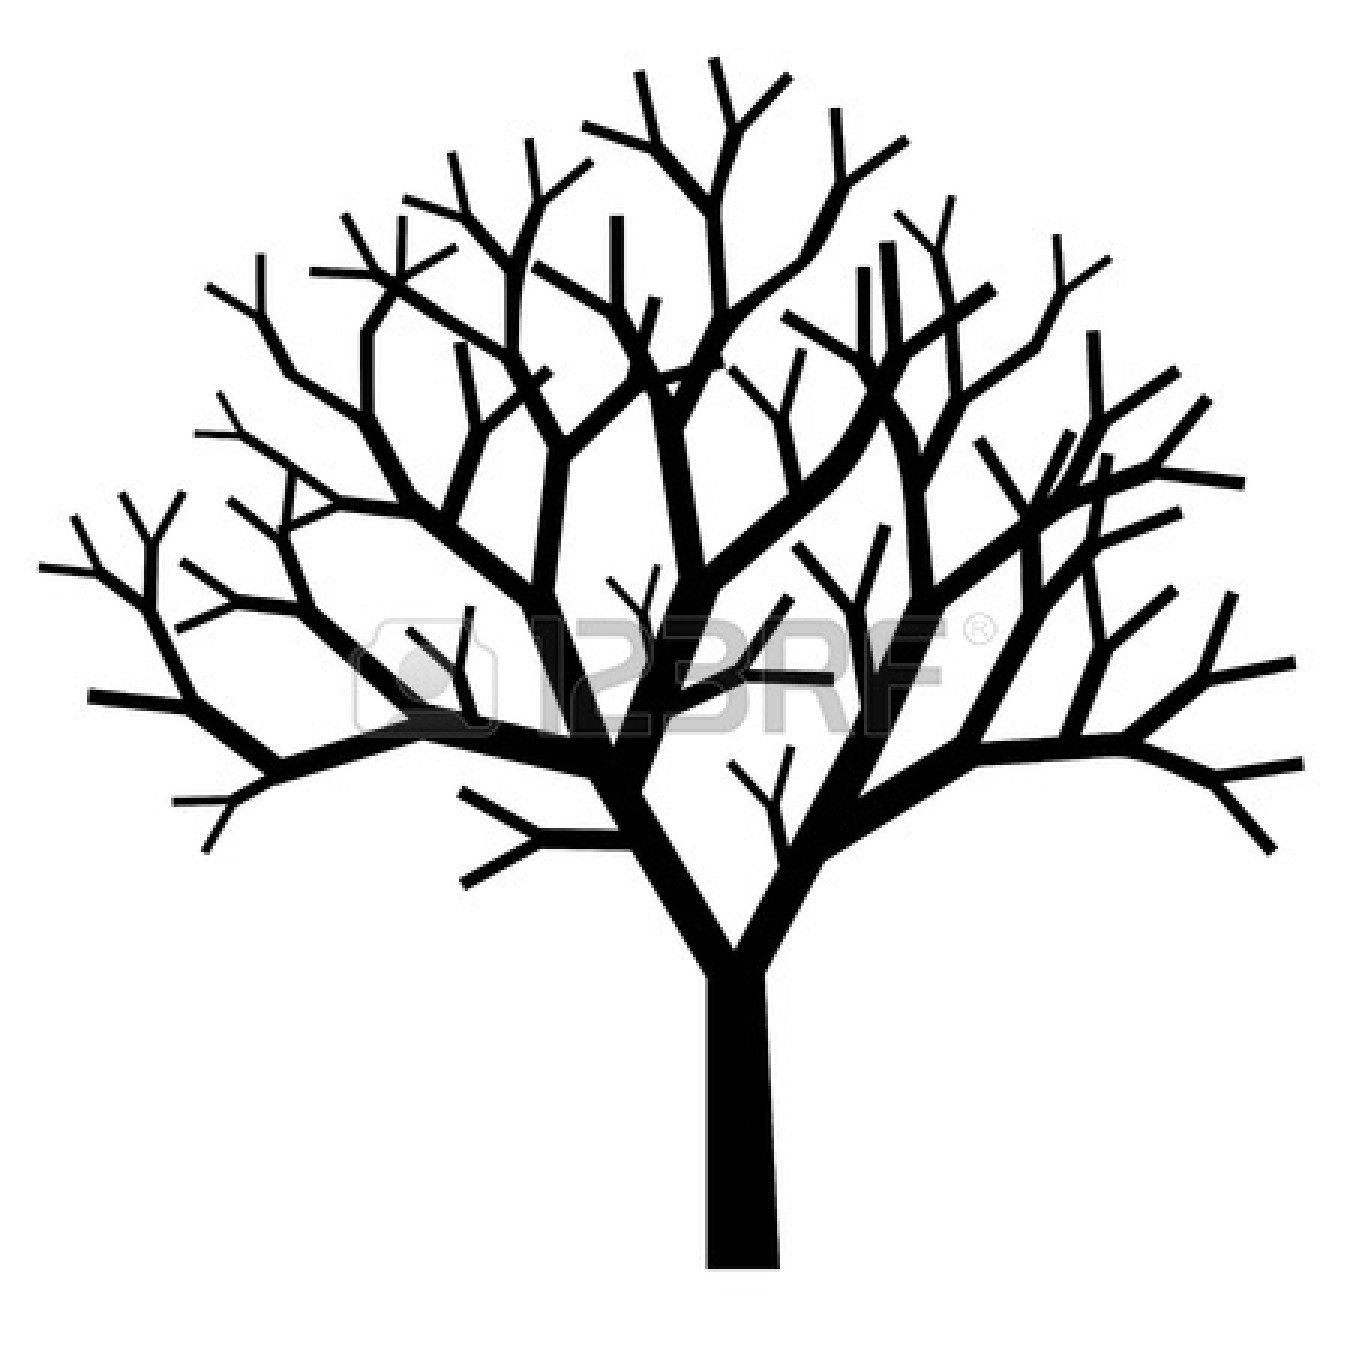 Simple Black And White Tree Branches